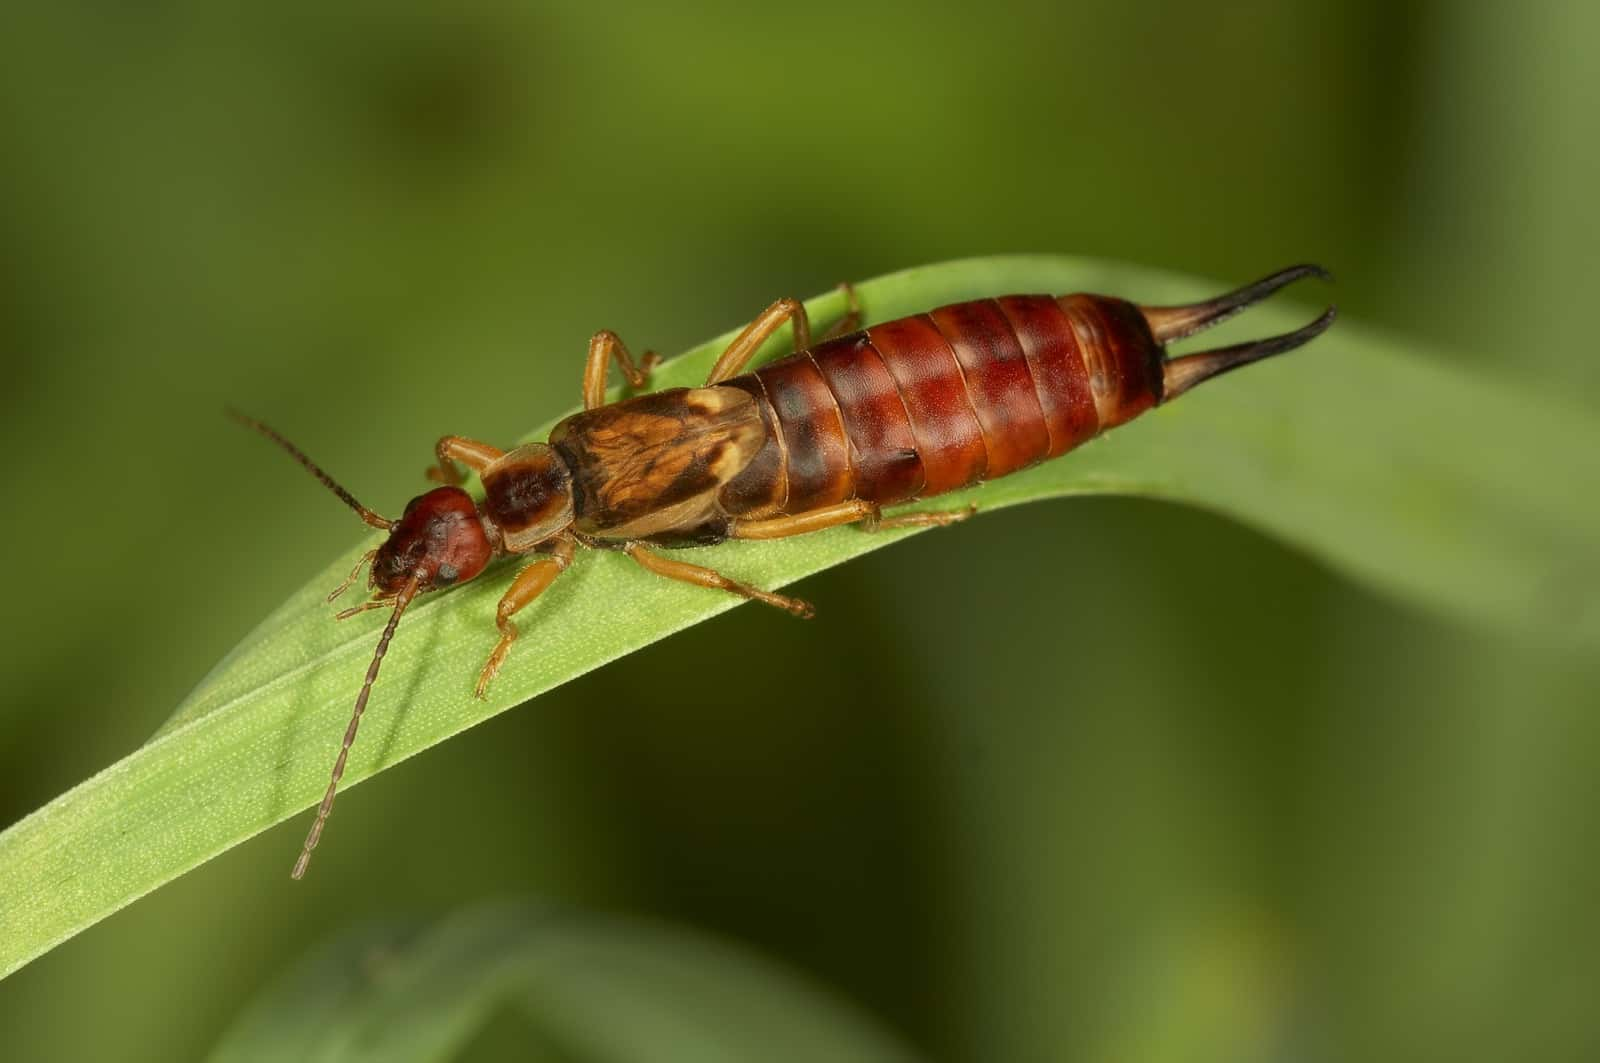 how to get rid of earwigs from your house